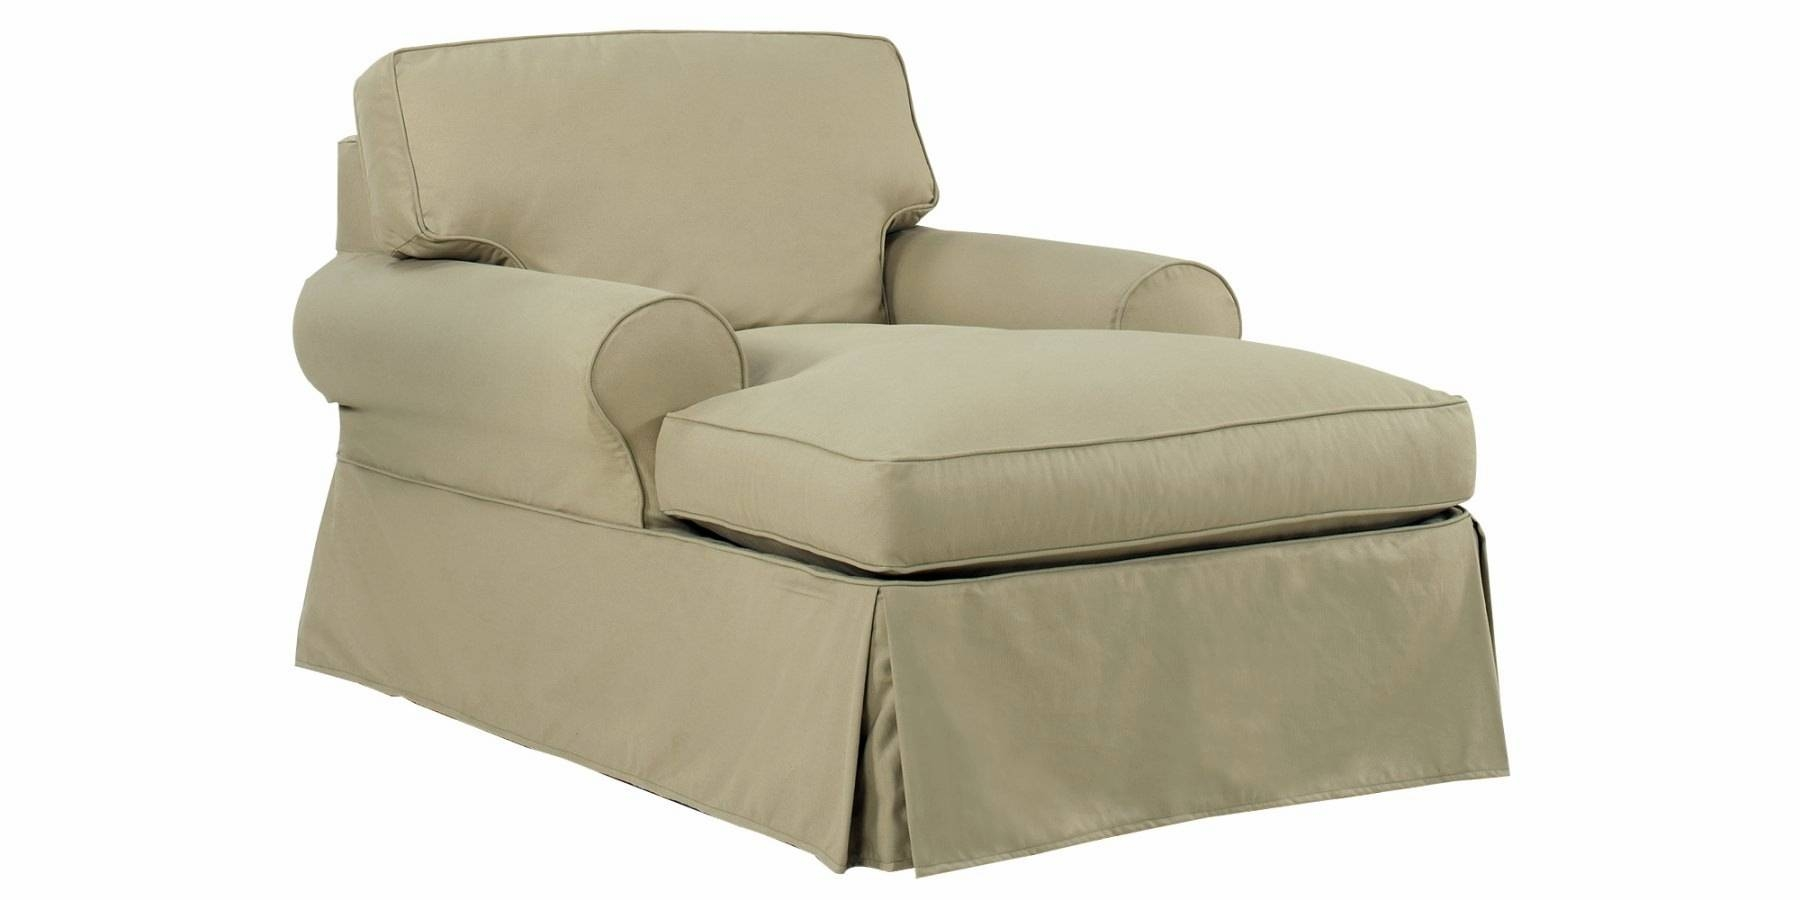 Slip Covers Chair And Quality Interiors | Sofa Slipcover | Chair Within Sofa And Chair Covers (Photo 21 of 30)